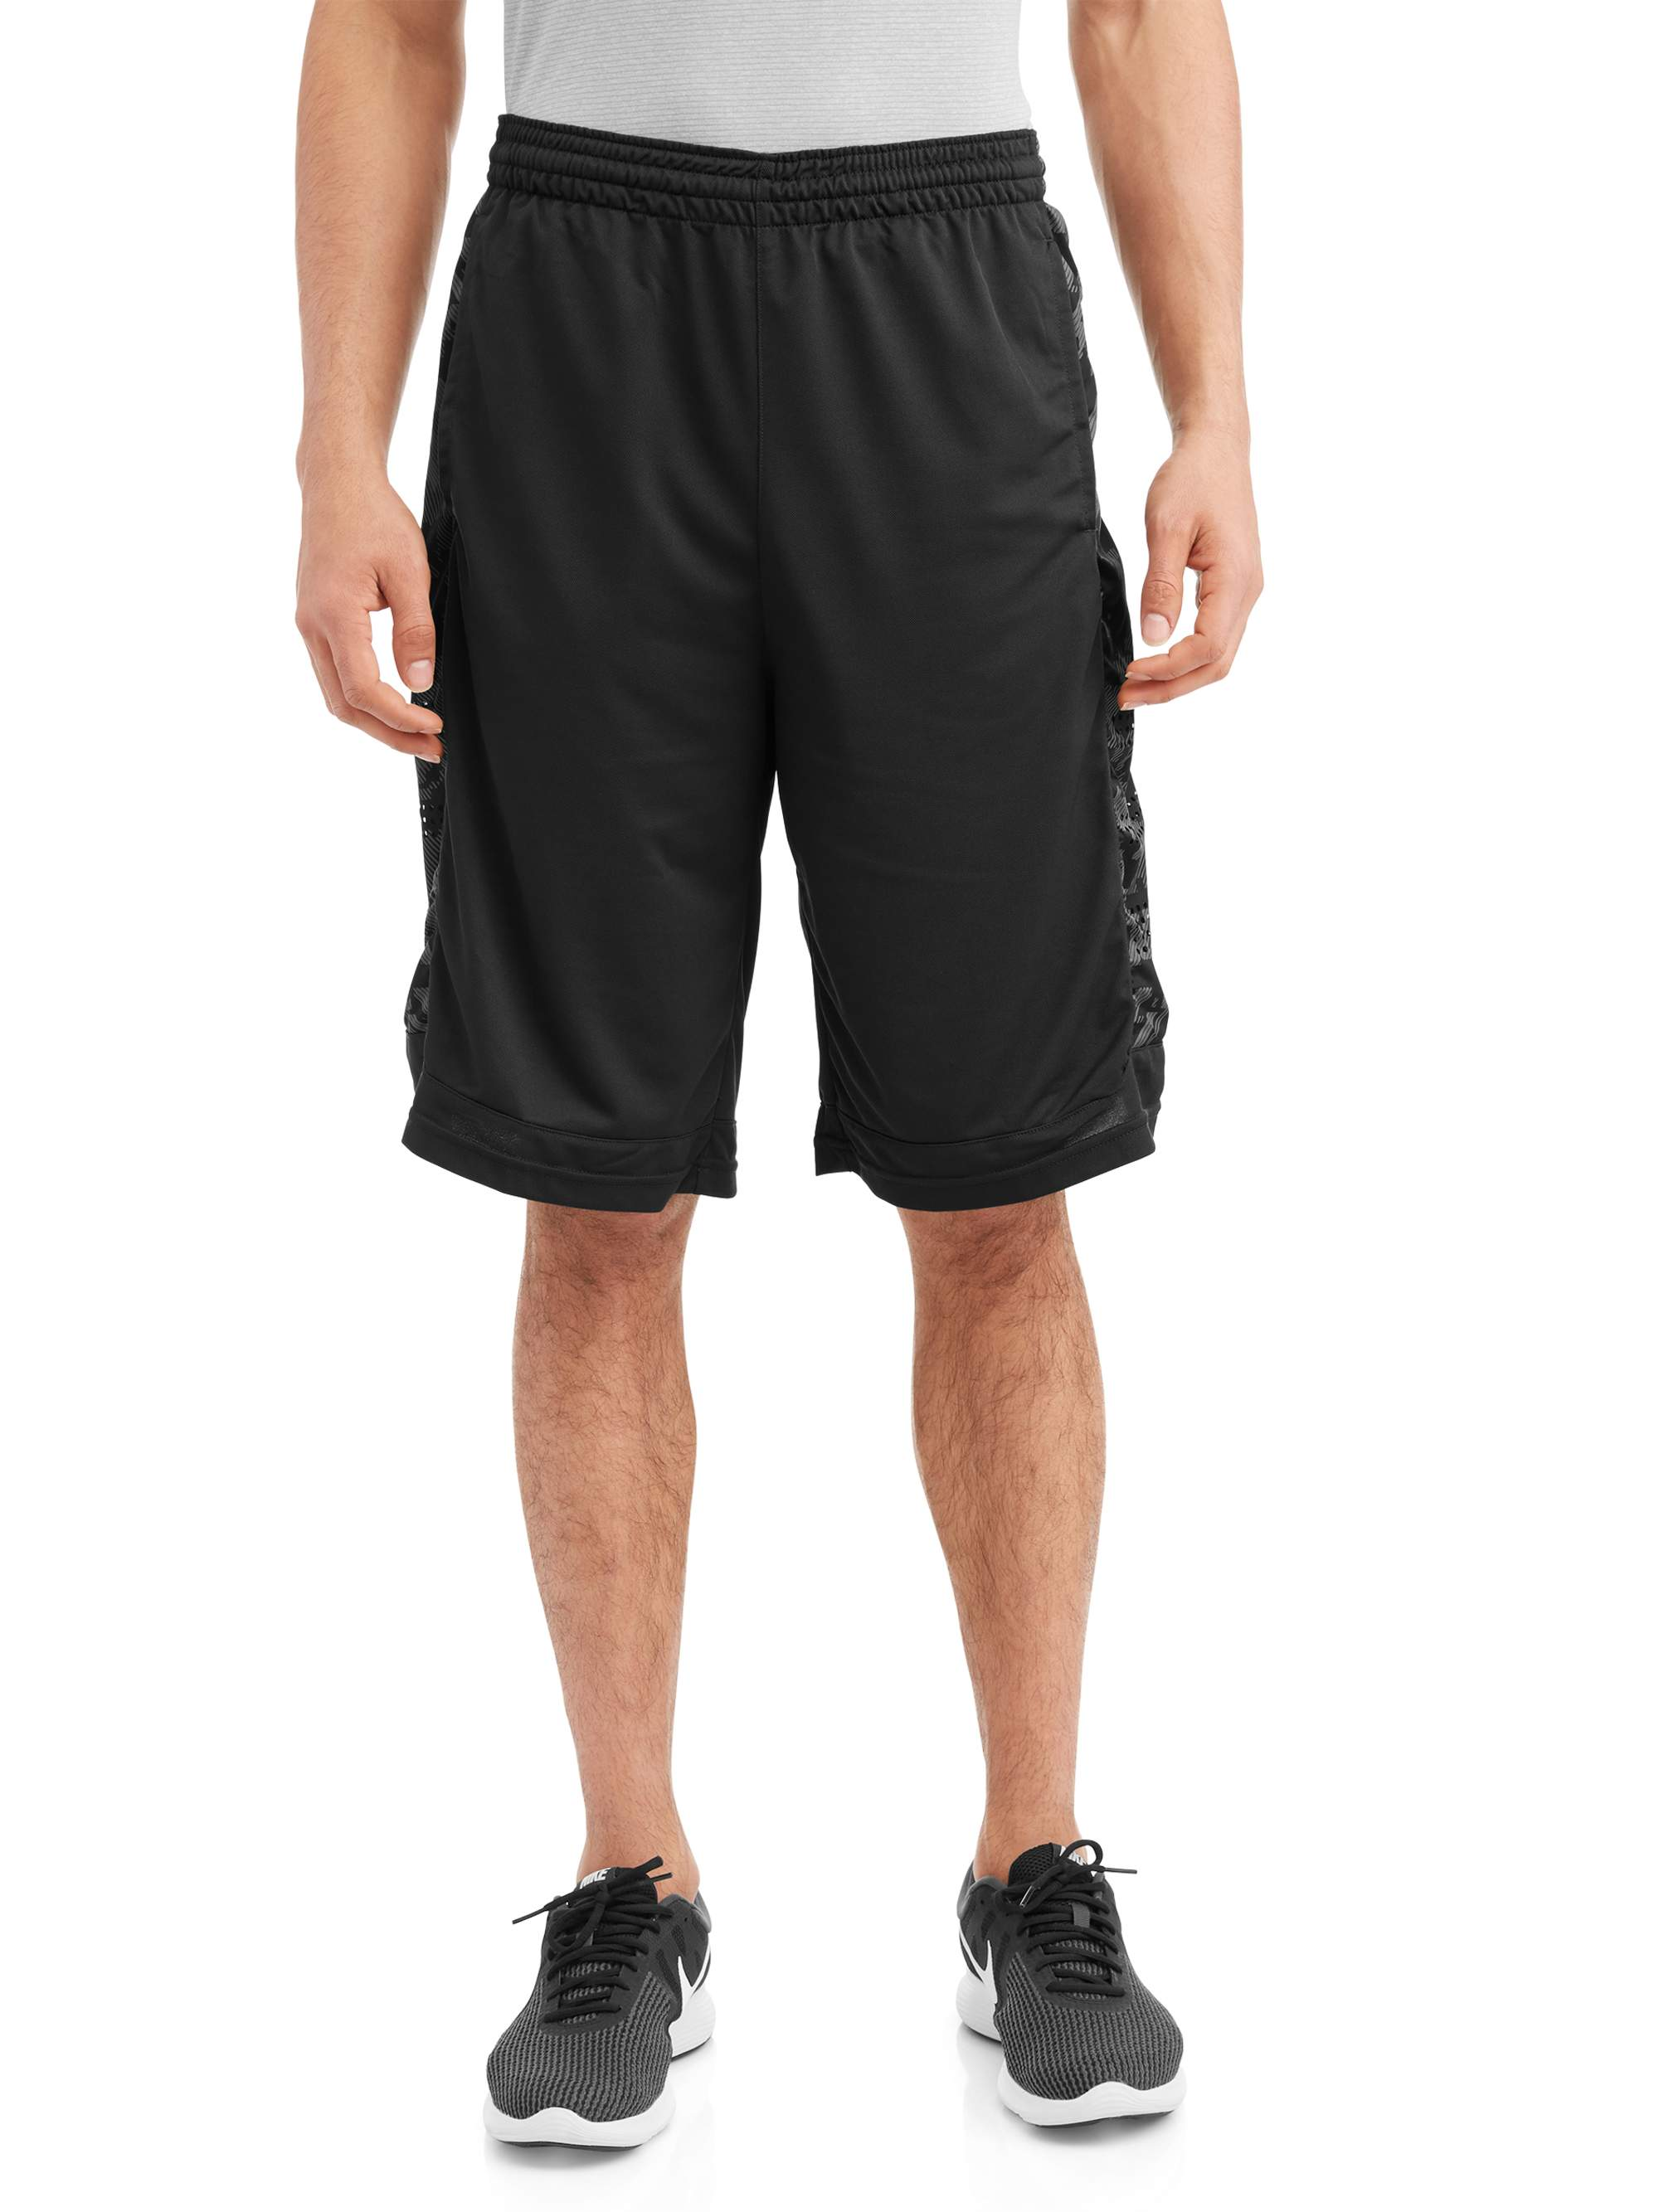 Men's Woven Shorts with Printed Insert